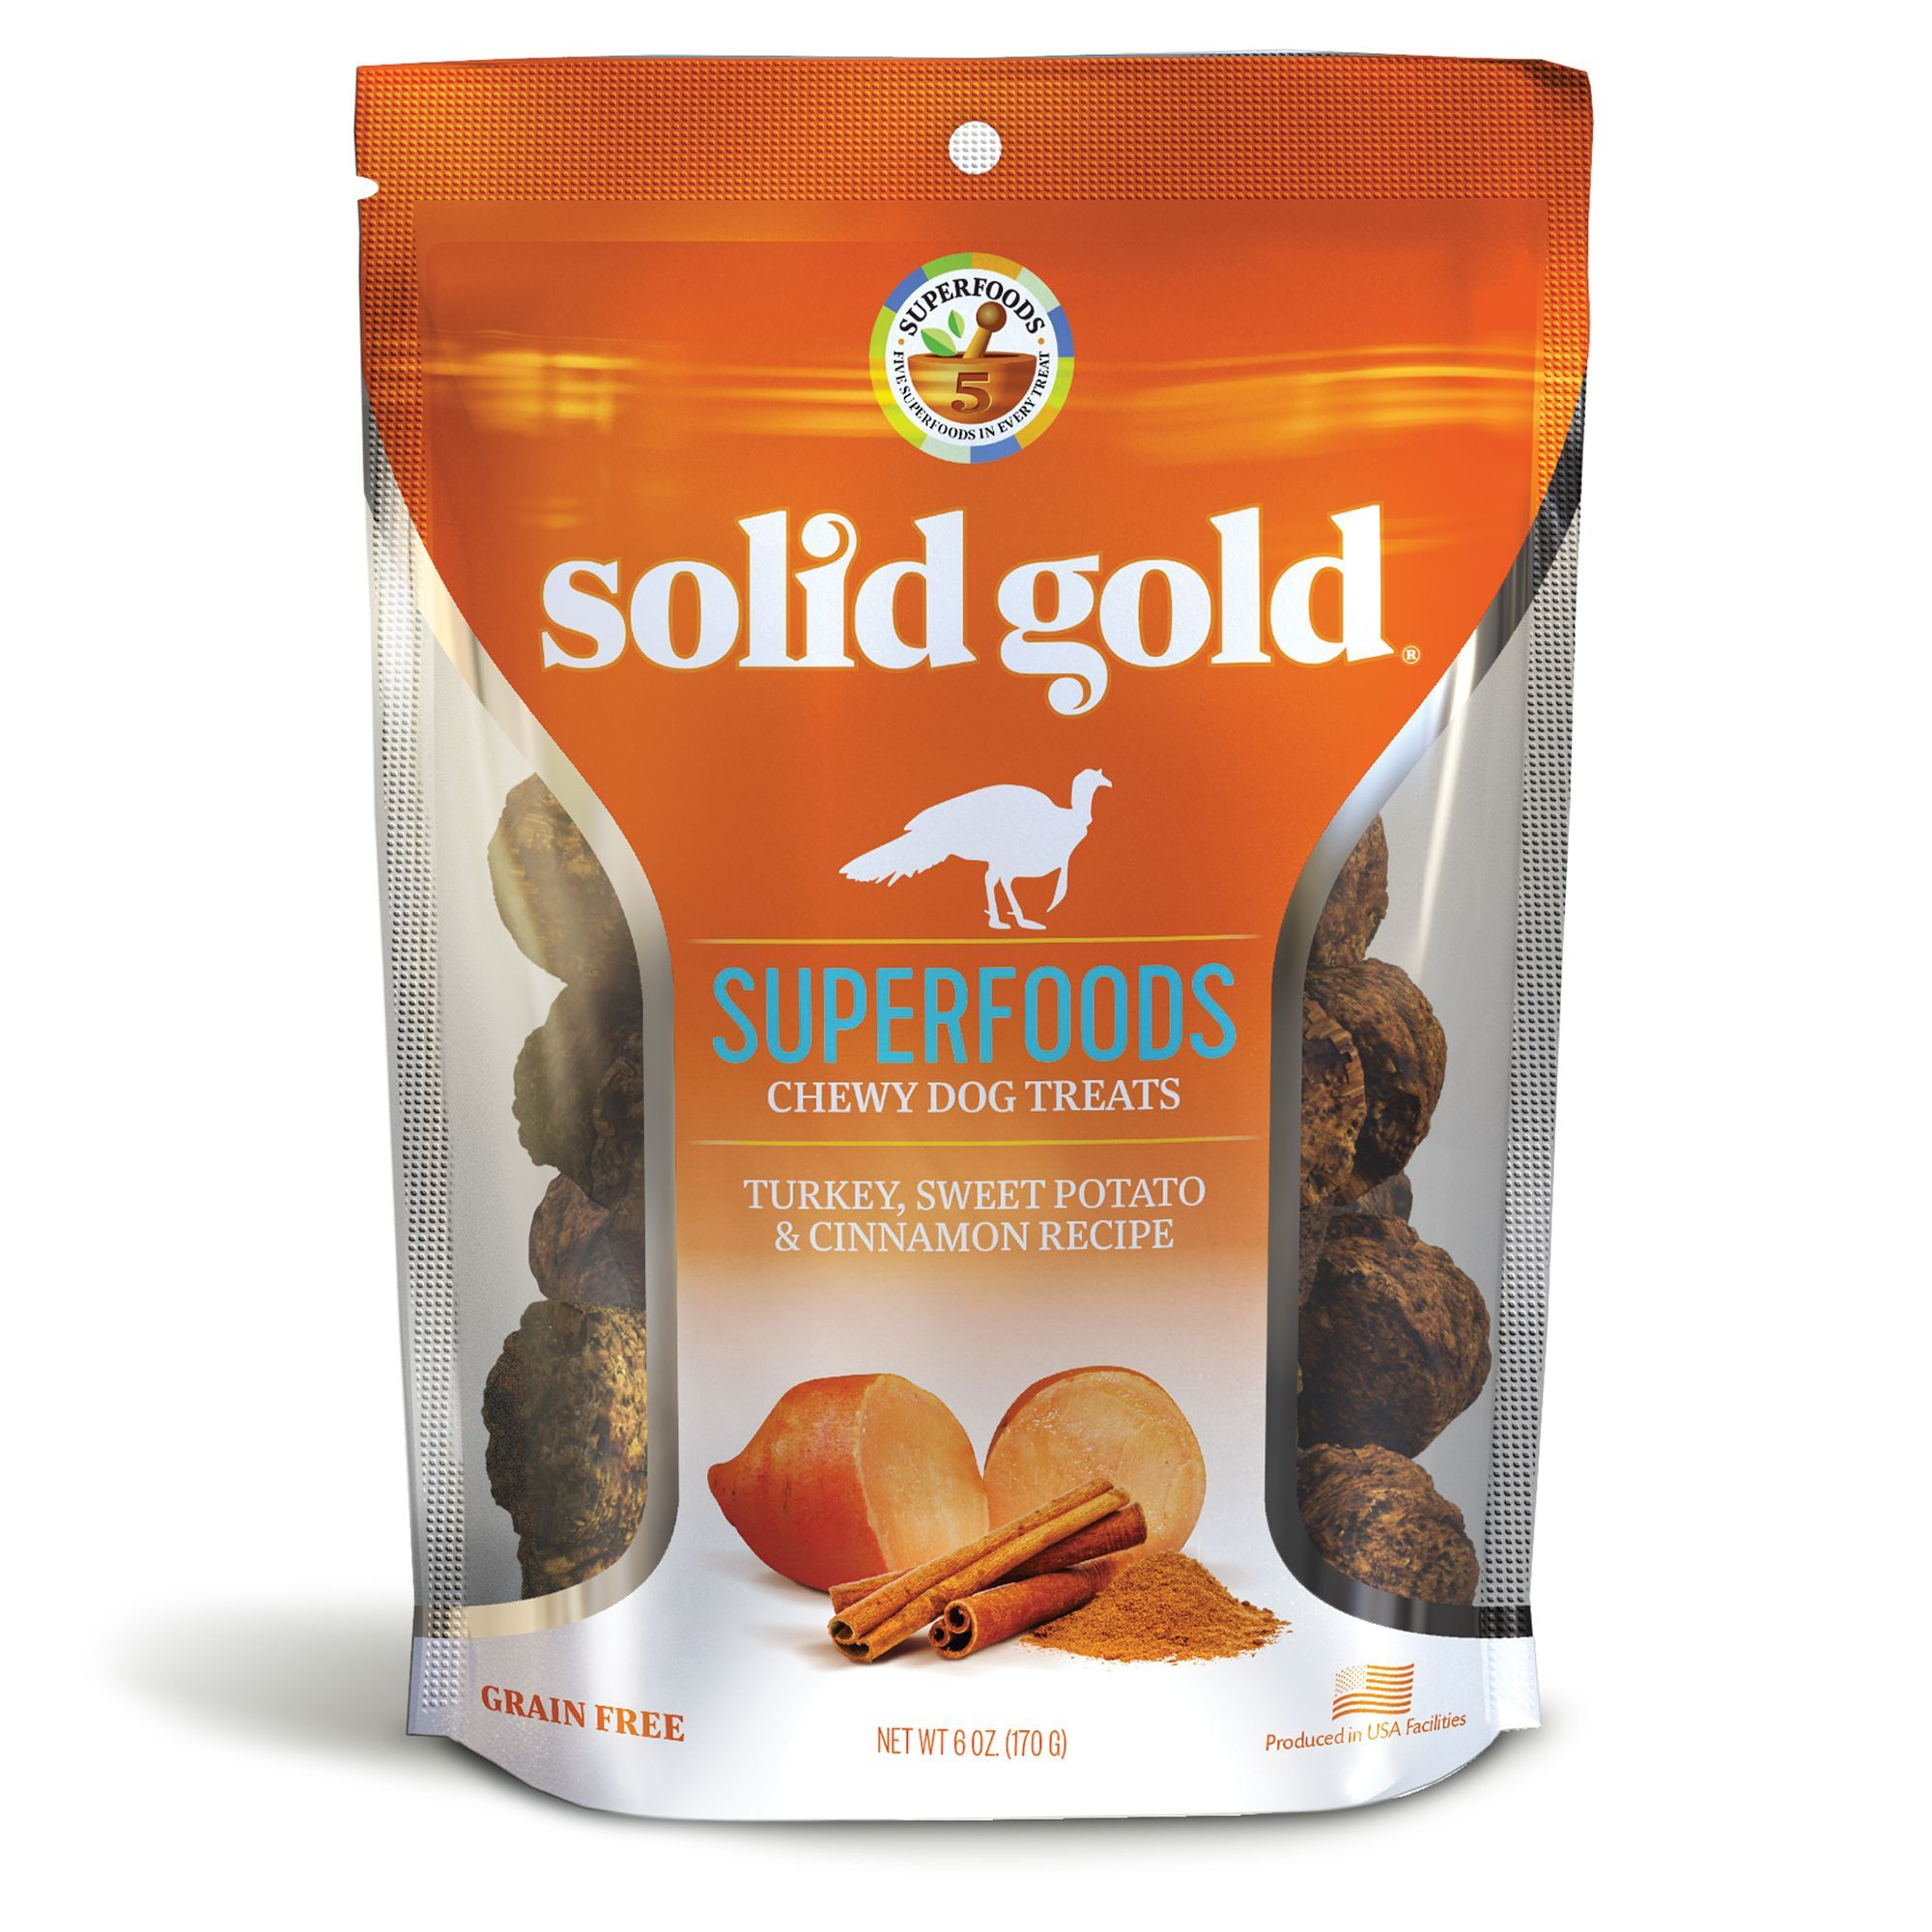 Solid Gold Superfoods Chewy Dog Treats Grain Free Size 6 Oz